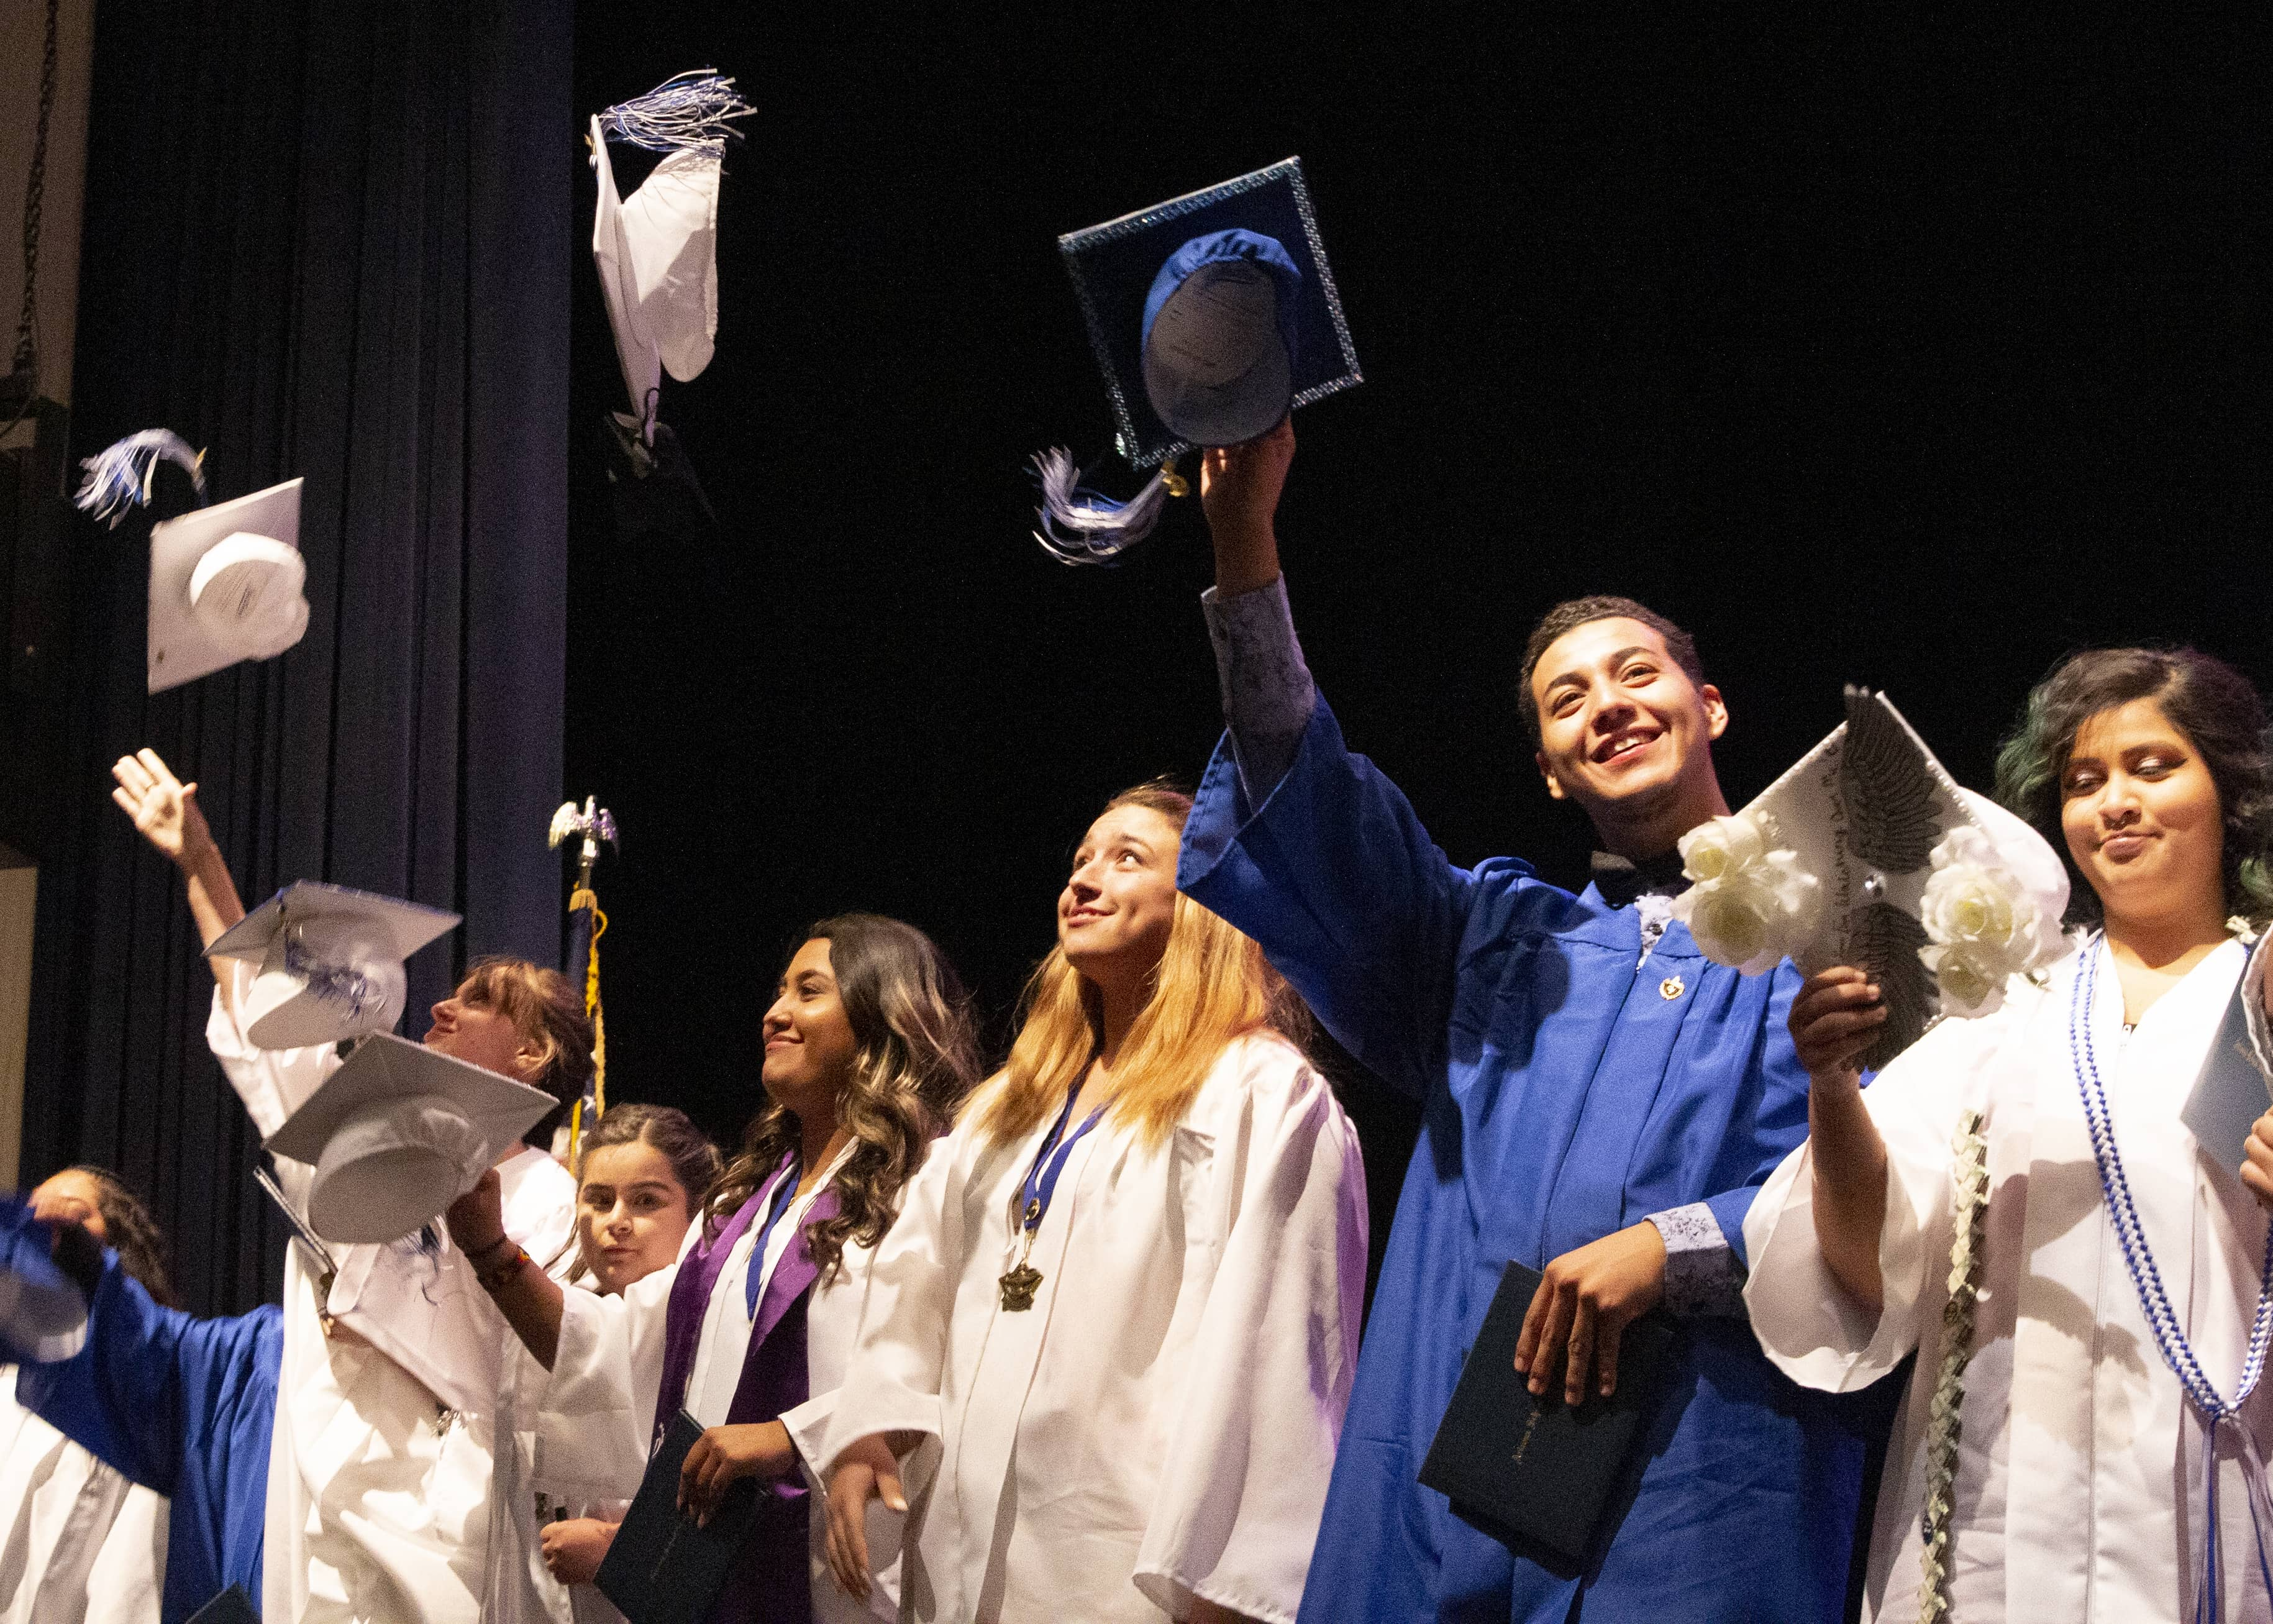 Students wearing cap and gowns wave in the air during graduation